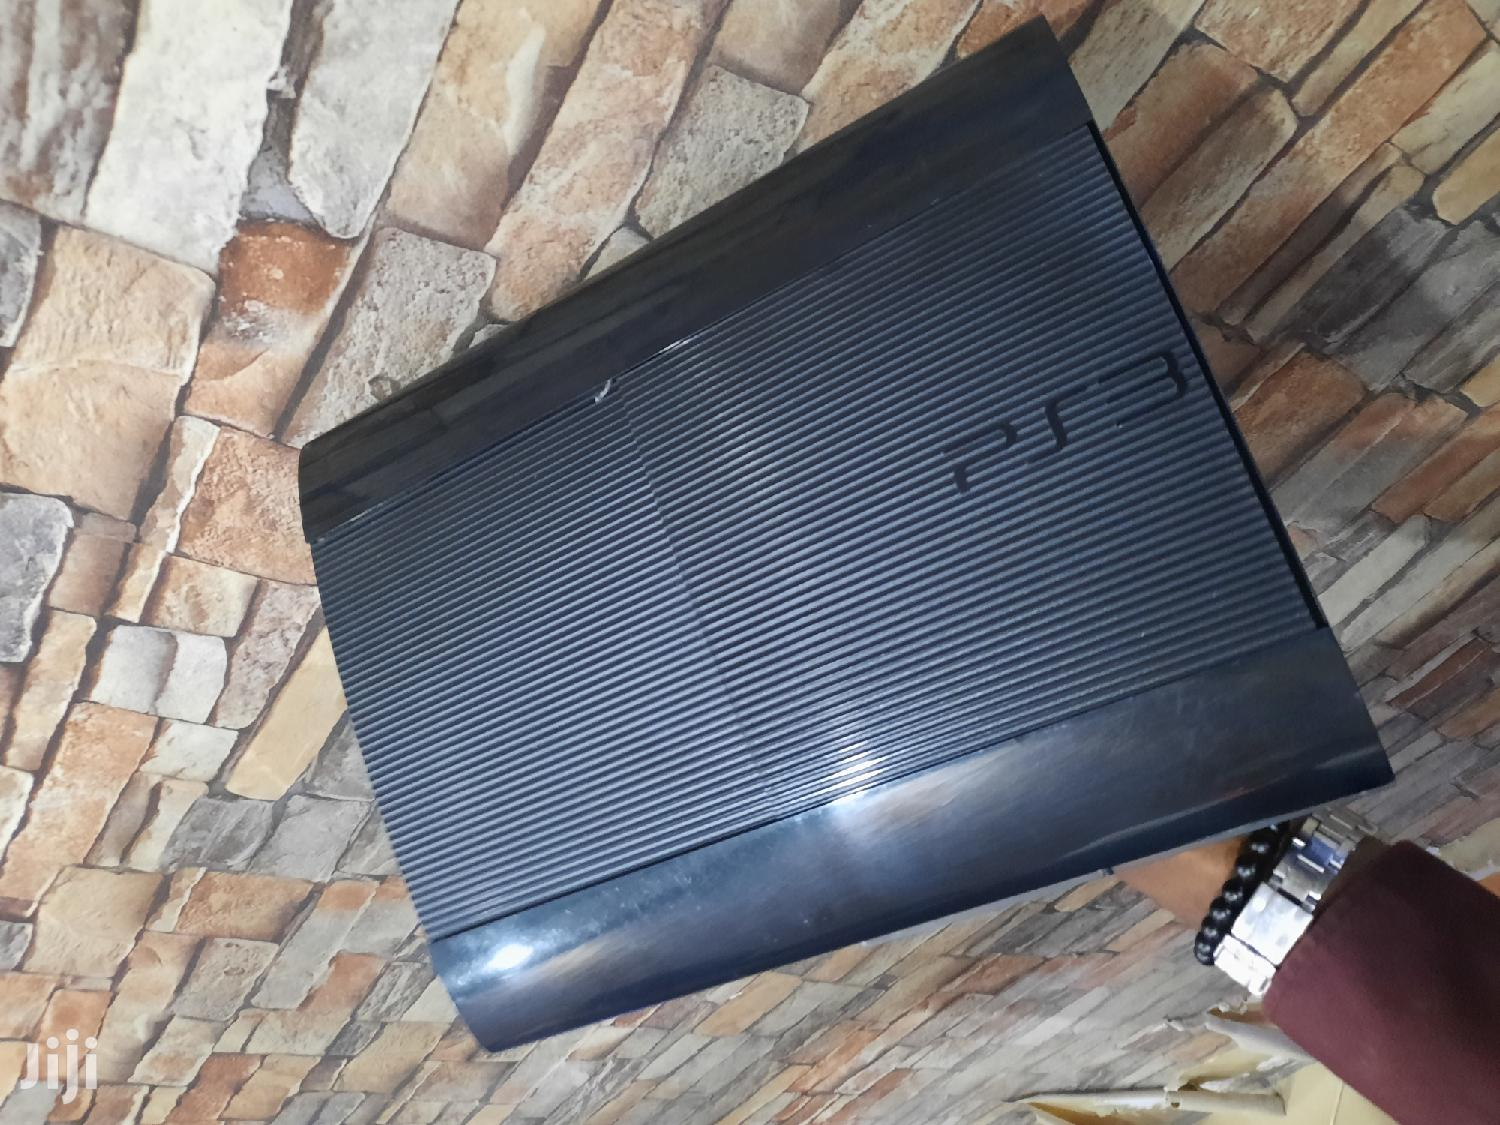 Sony Playstation 3 1TB | Video Game Consoles for sale in Ilala, Dar es Salaam, Tanzania